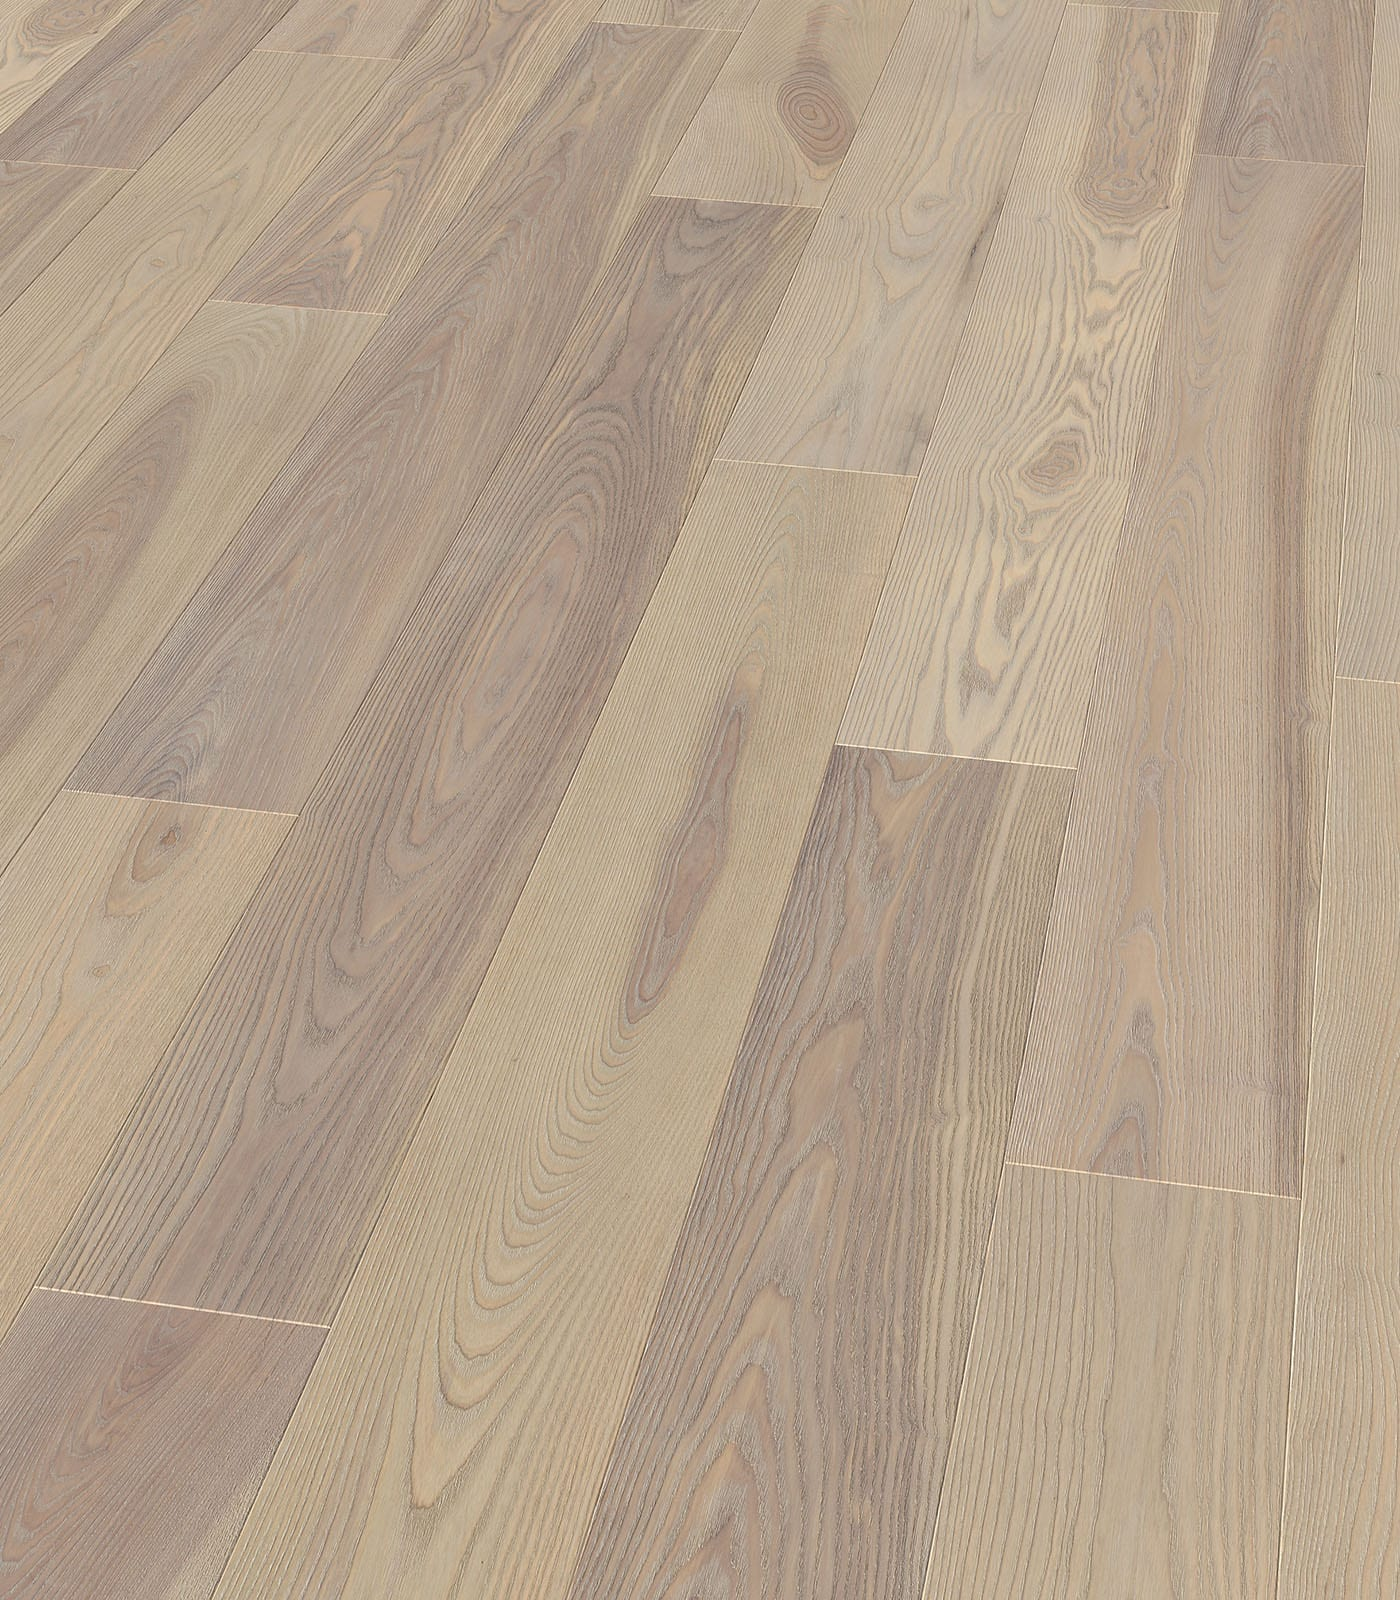 Salzburg-After Oak Collection-European Ash Floors - angle